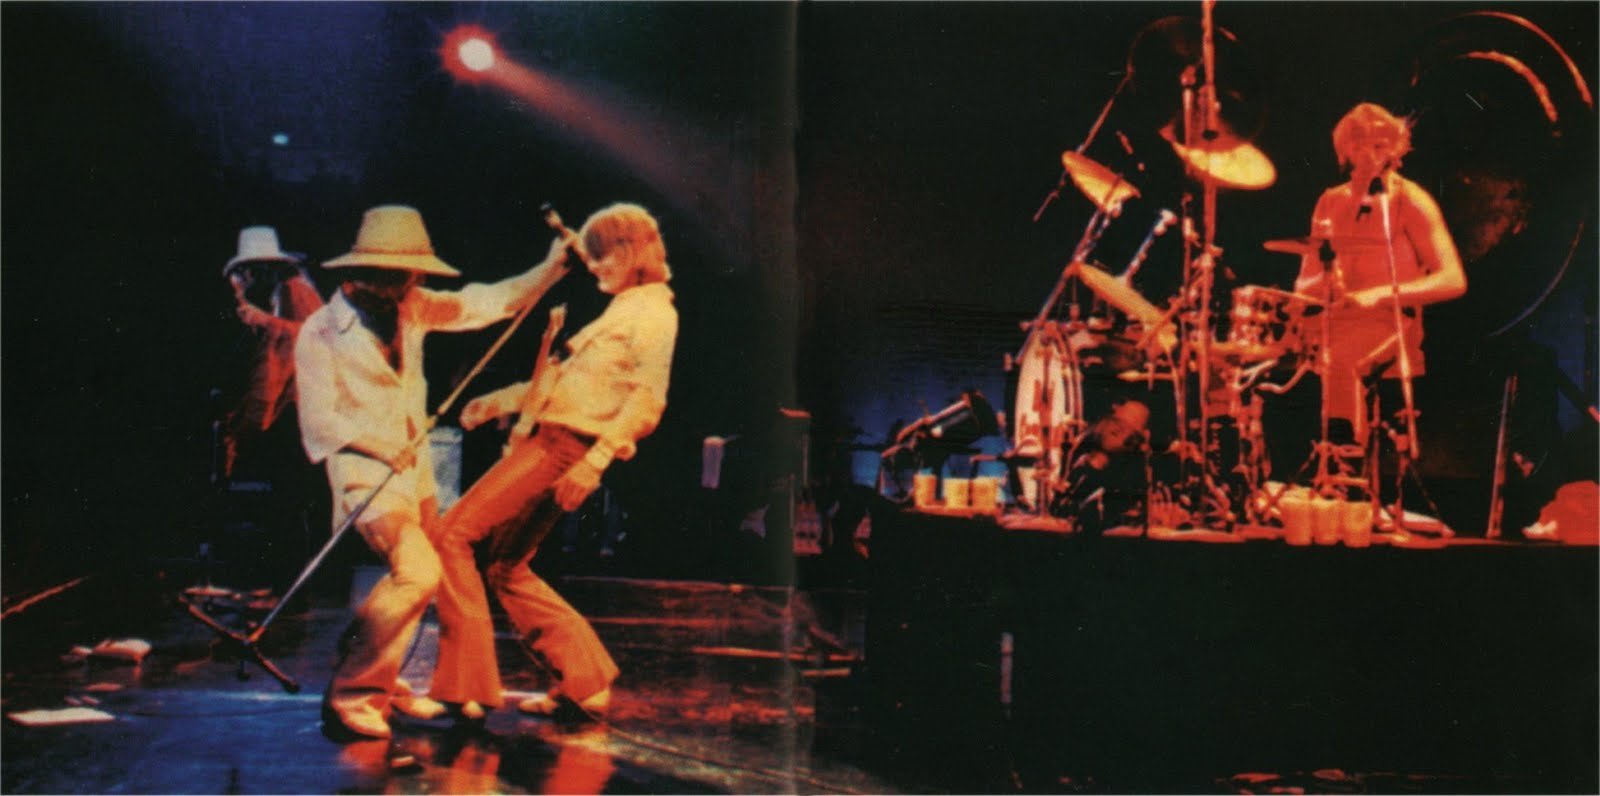 'Live in Albuquerque 1976' by Bad Company